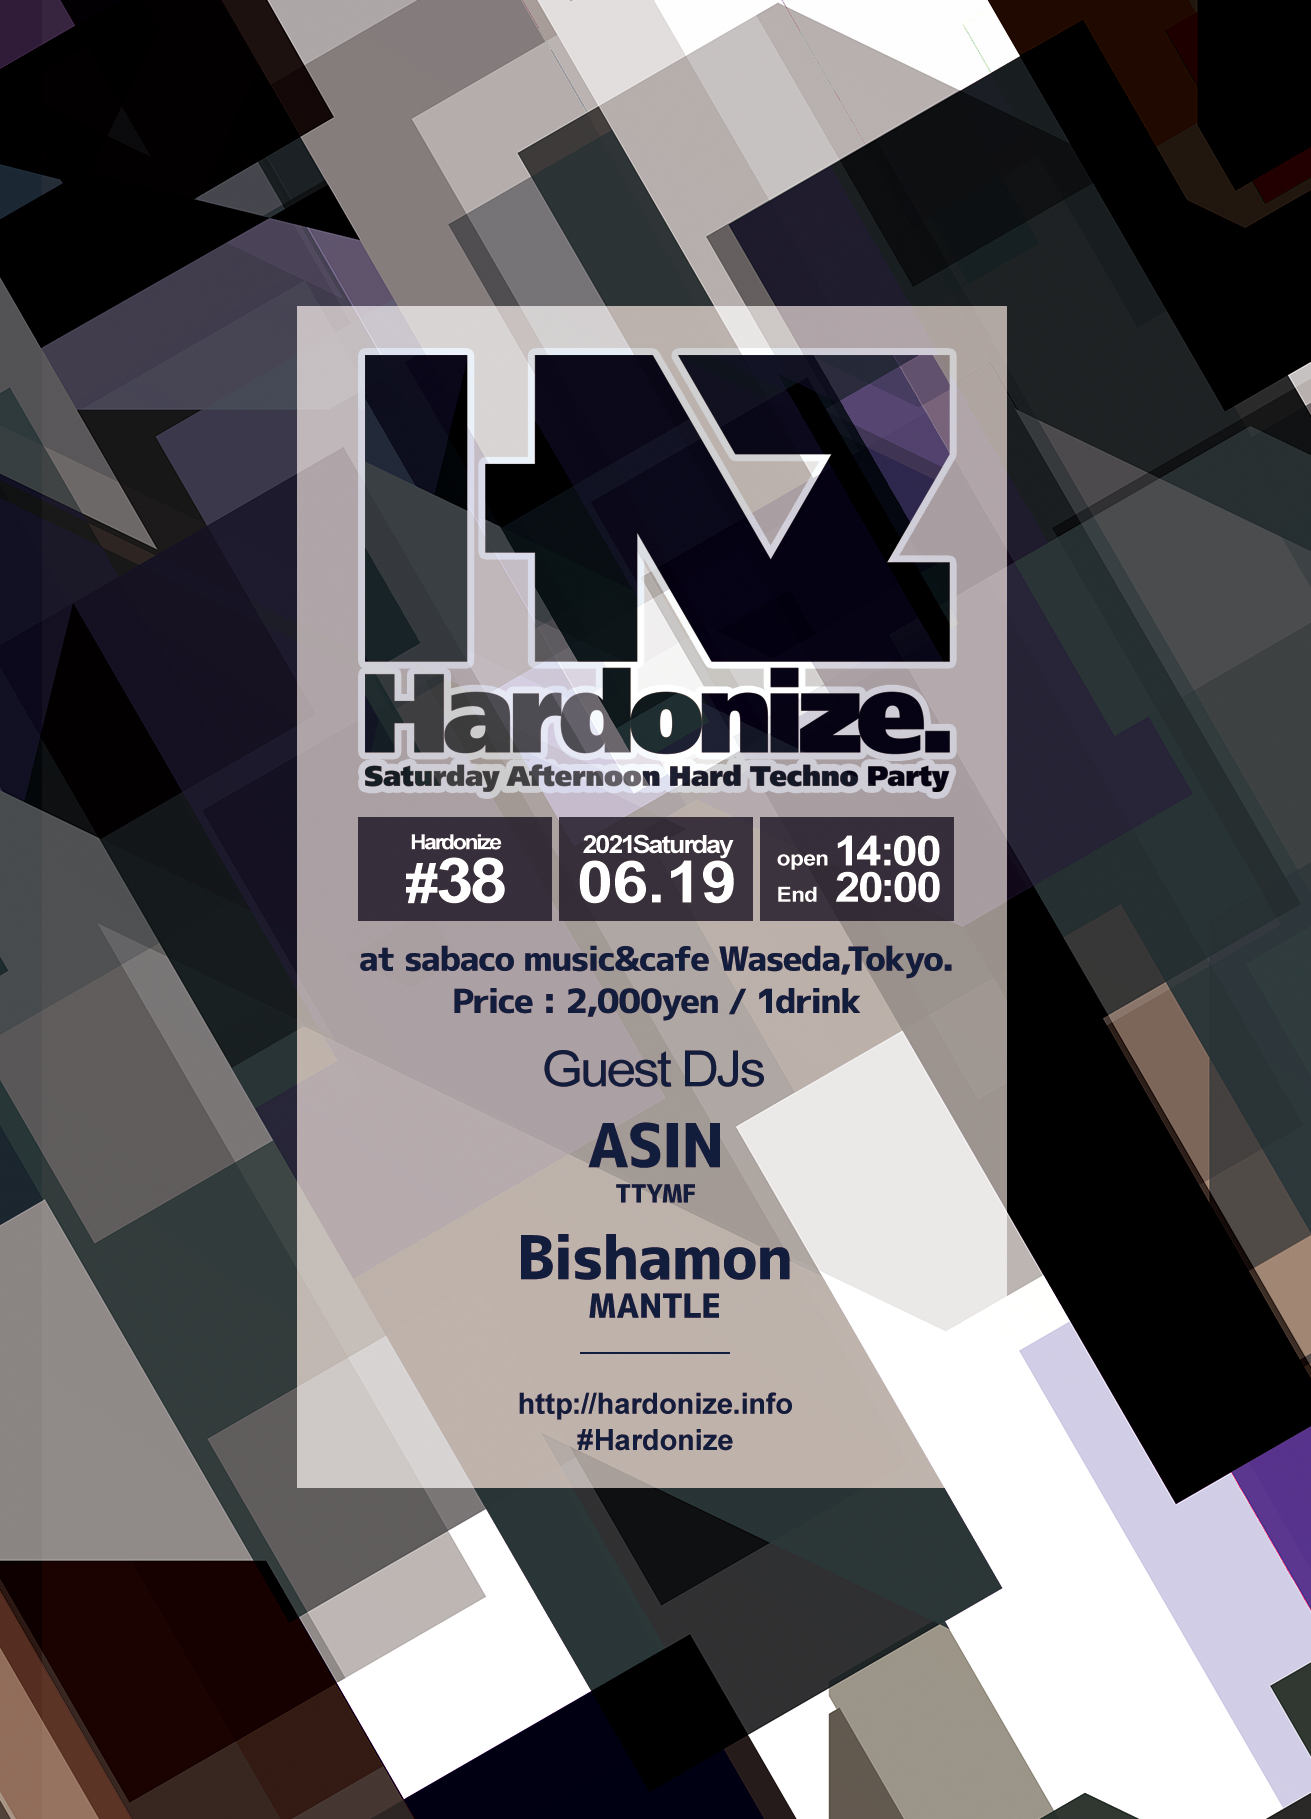 2021/06/19(sat) Hardonize #38 at sabaco music&cafe